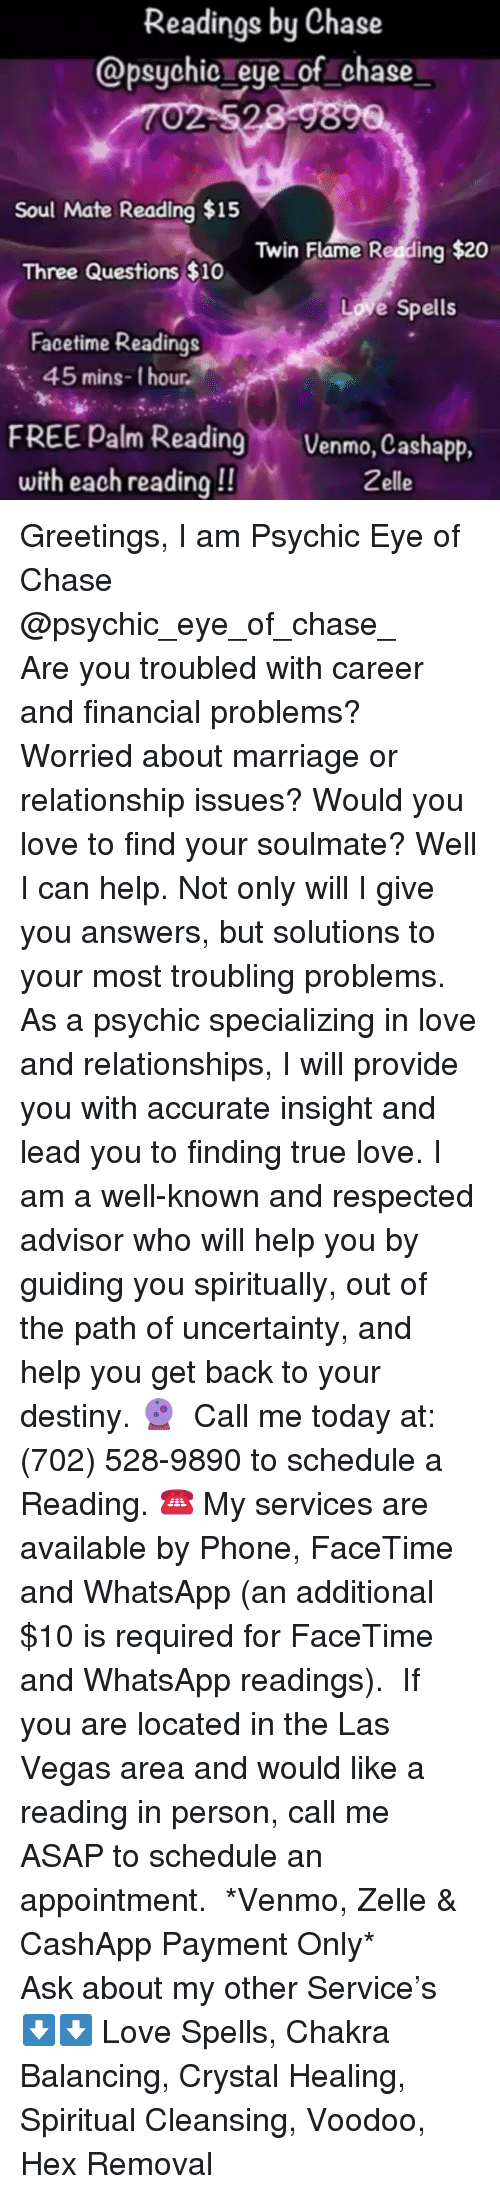 Destiny, Facetime, and Love: Readings by Chase  @psychio eye of chase  Soul Mate Reading $15  Twin Flame Reading $20  Three Questions $10  Love Spells  Facetime Readings  45 mins-1 hour  FREE Palm Reading Venmo, Cashapp.  with each reading!!  Zelle Greetings, I am Psychic Eye of Chase @psychic_eye_of_chase_   Are you troubled with career and financial problems? Worried about marriage or relationship issues? Would you love to find your soulmate? Well I can help. Not only will I give you answers, but solutions to your most troubling problems. As a psychic specializing in love and relationships, I will provide you with accurate insight and lead you to finding true love. I am a well-known and respected advisor who will help you by guiding you spiritually, out of the path of uncertainty, and help you get back to your destiny.🔮  Call me today at: (702) 528-9890 to schedule a Reading. ☎️ My services are available by Phone, FaceTime and WhatsApp (an additional $10 is required for FaceTime and WhatsApp readings).  If you are located in the Las Vegas area and would like a reading in person, call me ASAP to schedule an appointment.  *Venmo, Zelle & CashApp Payment Only*  Ask about my other Service's ⬇️⬇️ Love Spells, Chakra Balancing, Crystal Healing, Spiritual Cleansing, Voodoo, Hex Removal